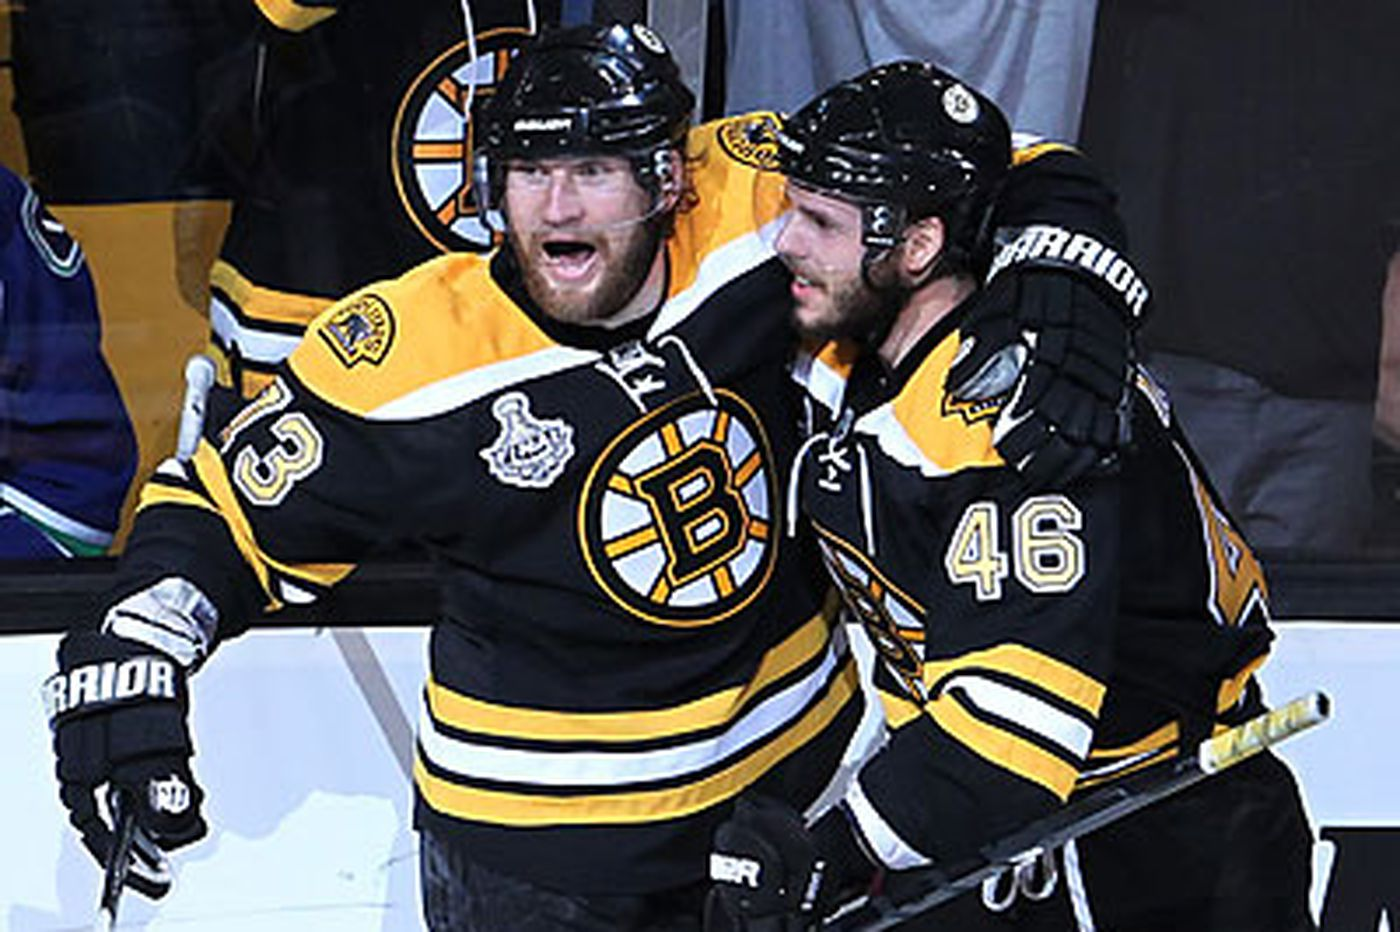 Bruins bite back, rout the Canucks